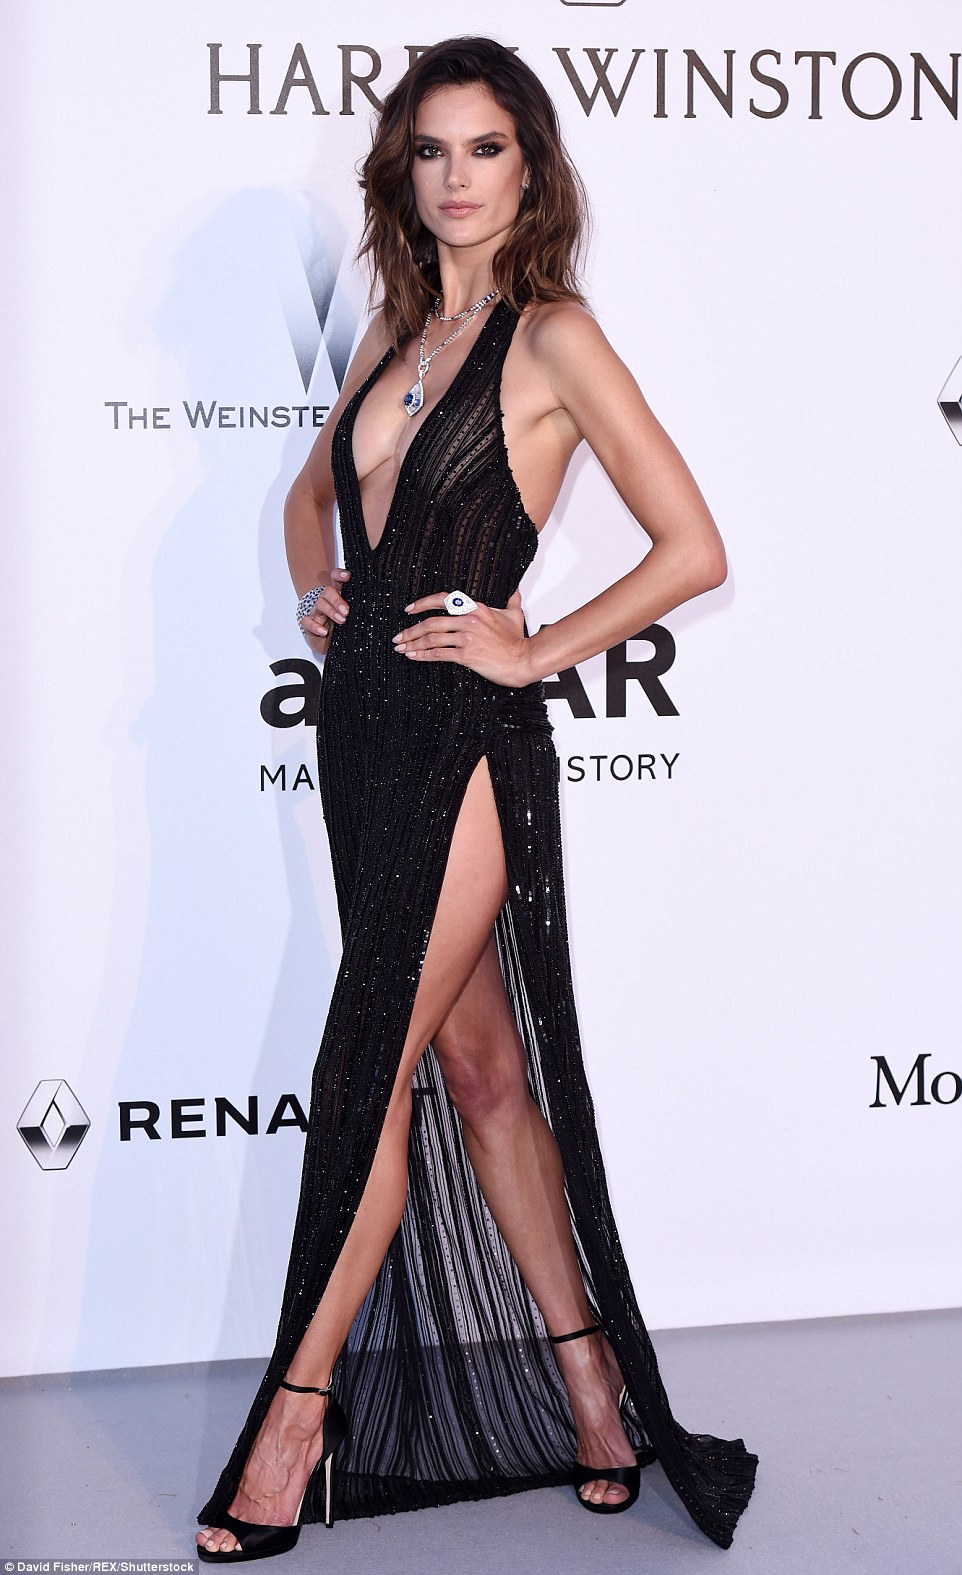 Smoking hot:Alessandra Ambrosio appears to have reached a crescendo with her wildly sexy ensembles as she paraded into Thursday night's amfAR Gala at the Hotel du Cap-Eden-Roc